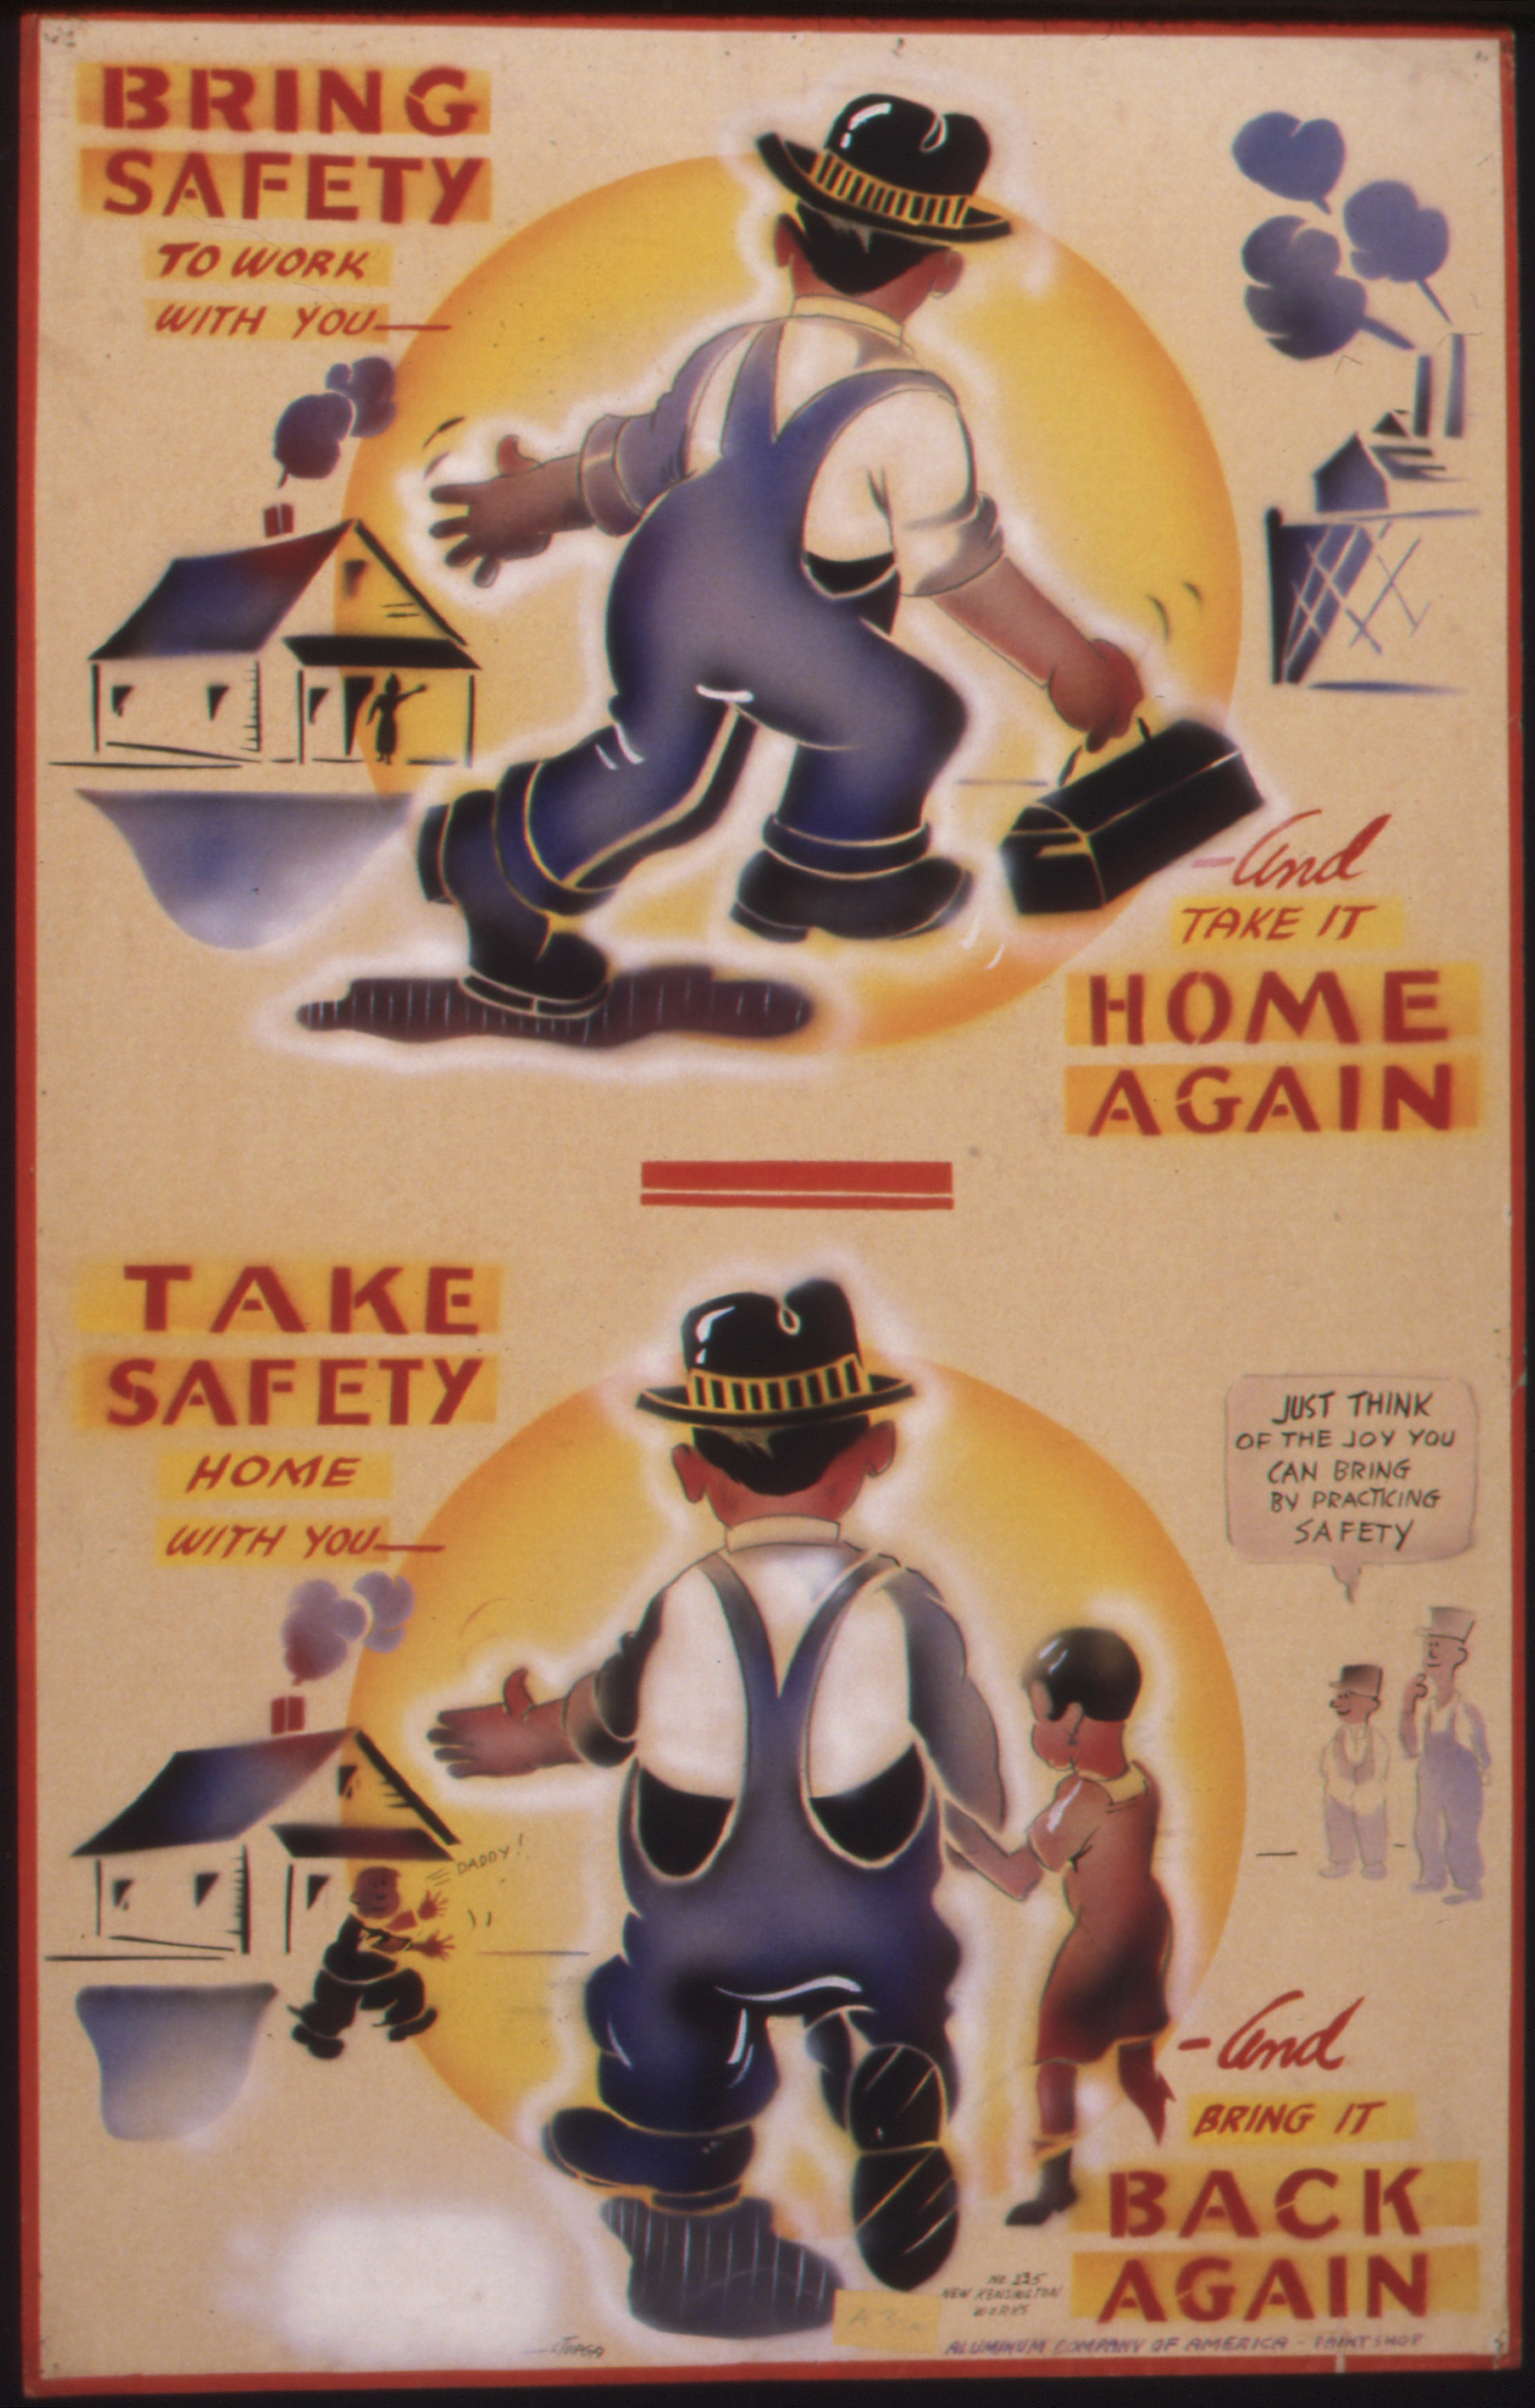 bring work home. File:Bring SafetyHome AgainTake Safety. Bring Work T